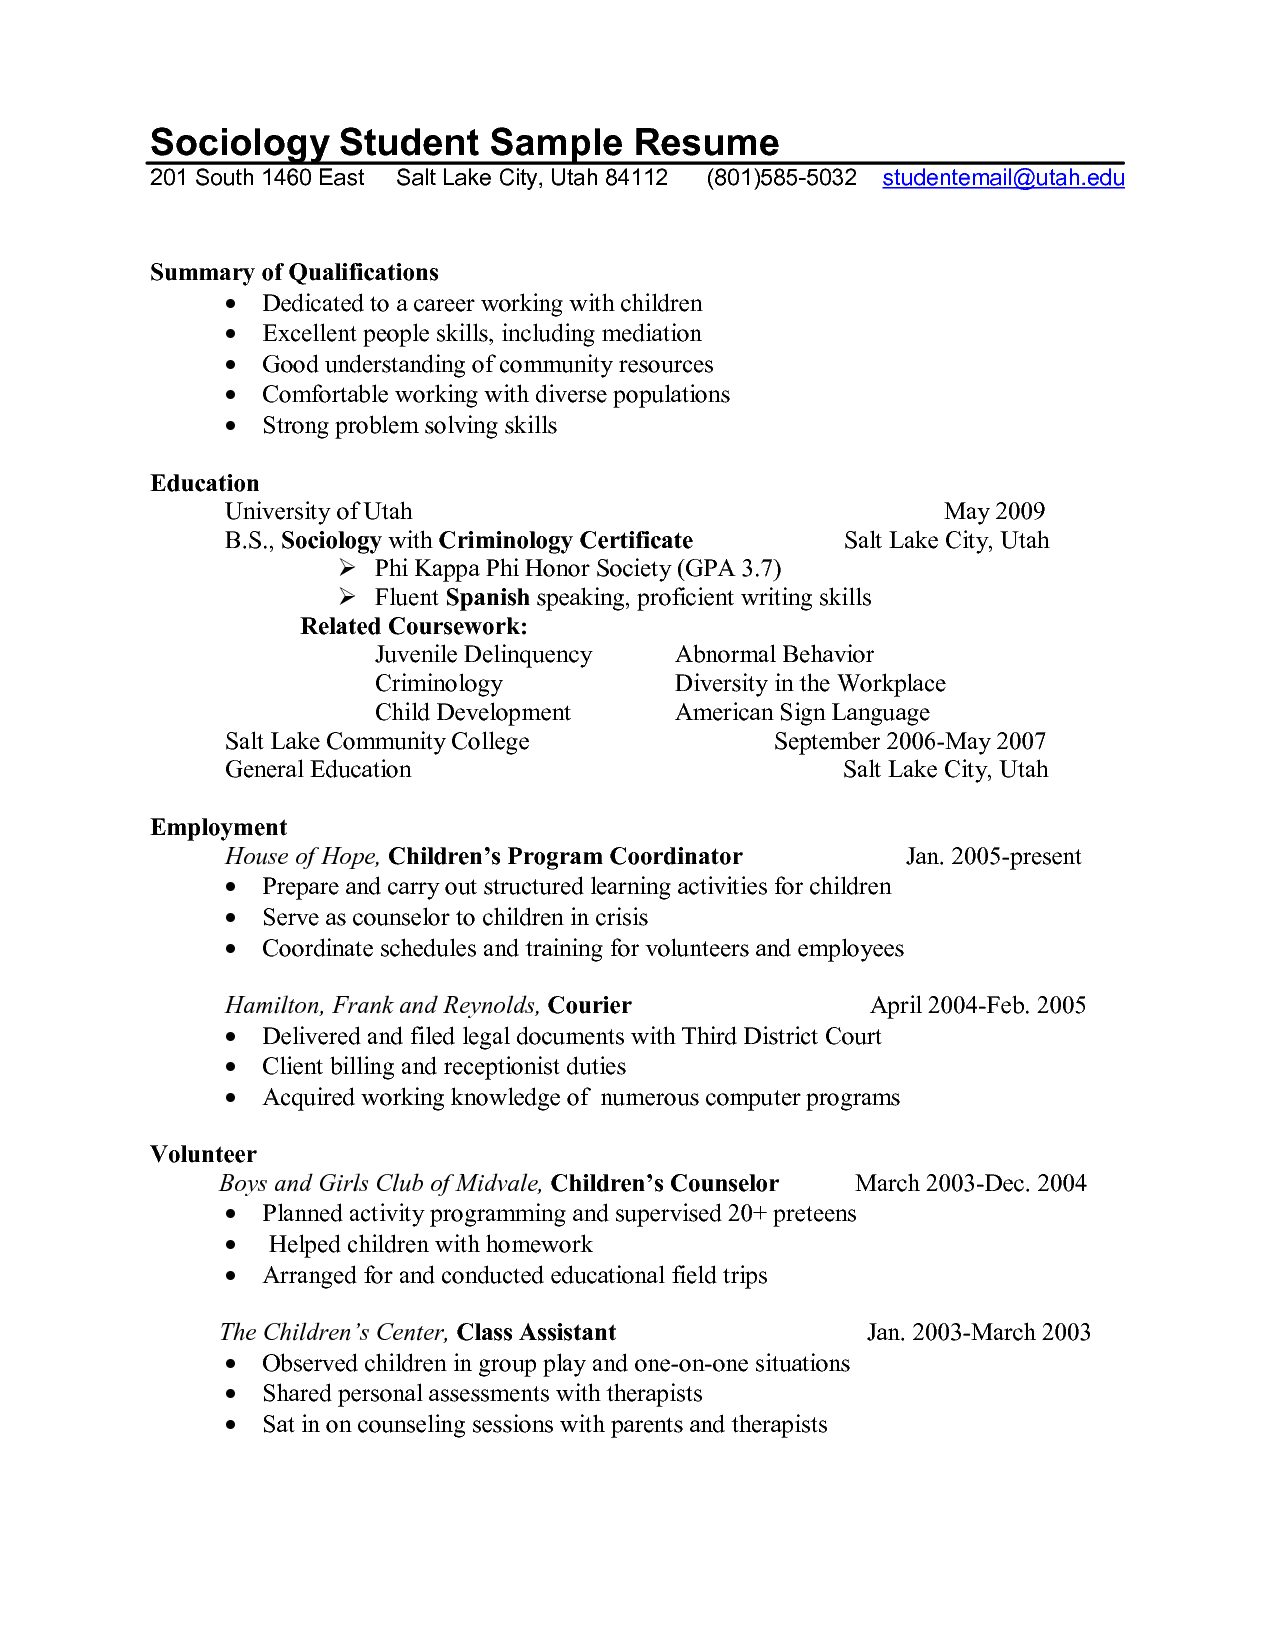 Rehab Counselor Resume Pinterest  Career Counselor Resume